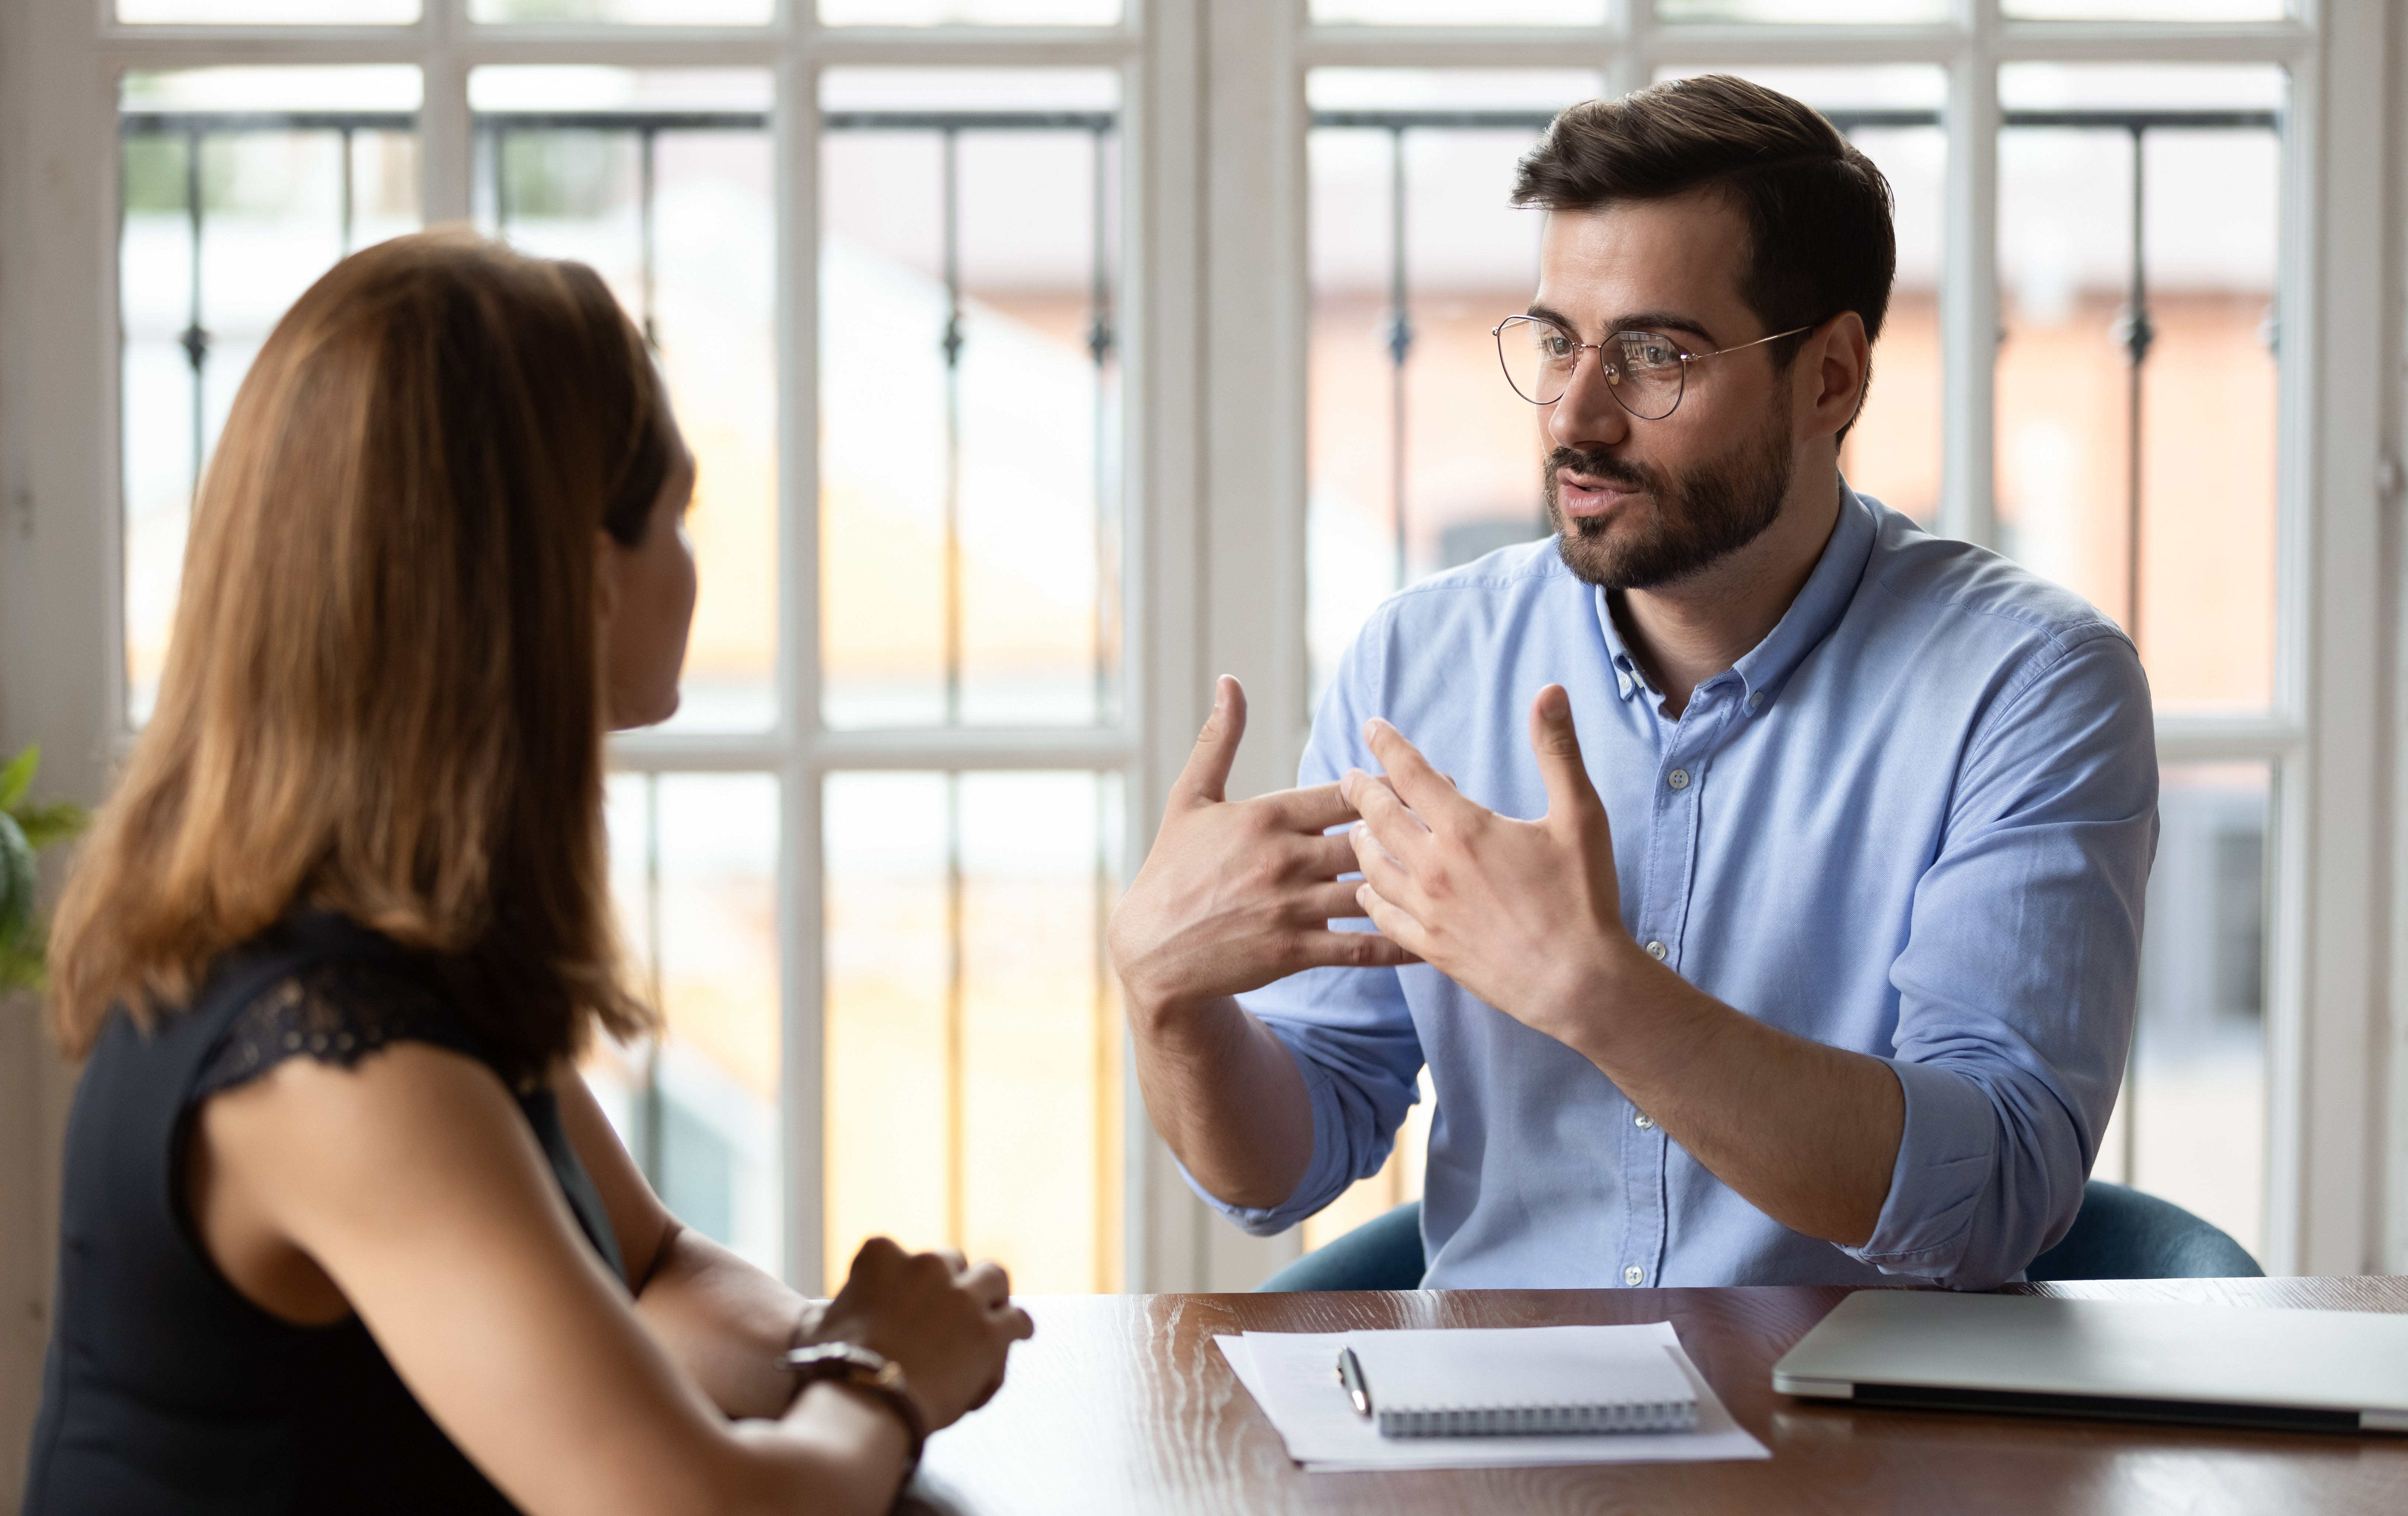 What Questions Should You Be Asking in a Job Interview?